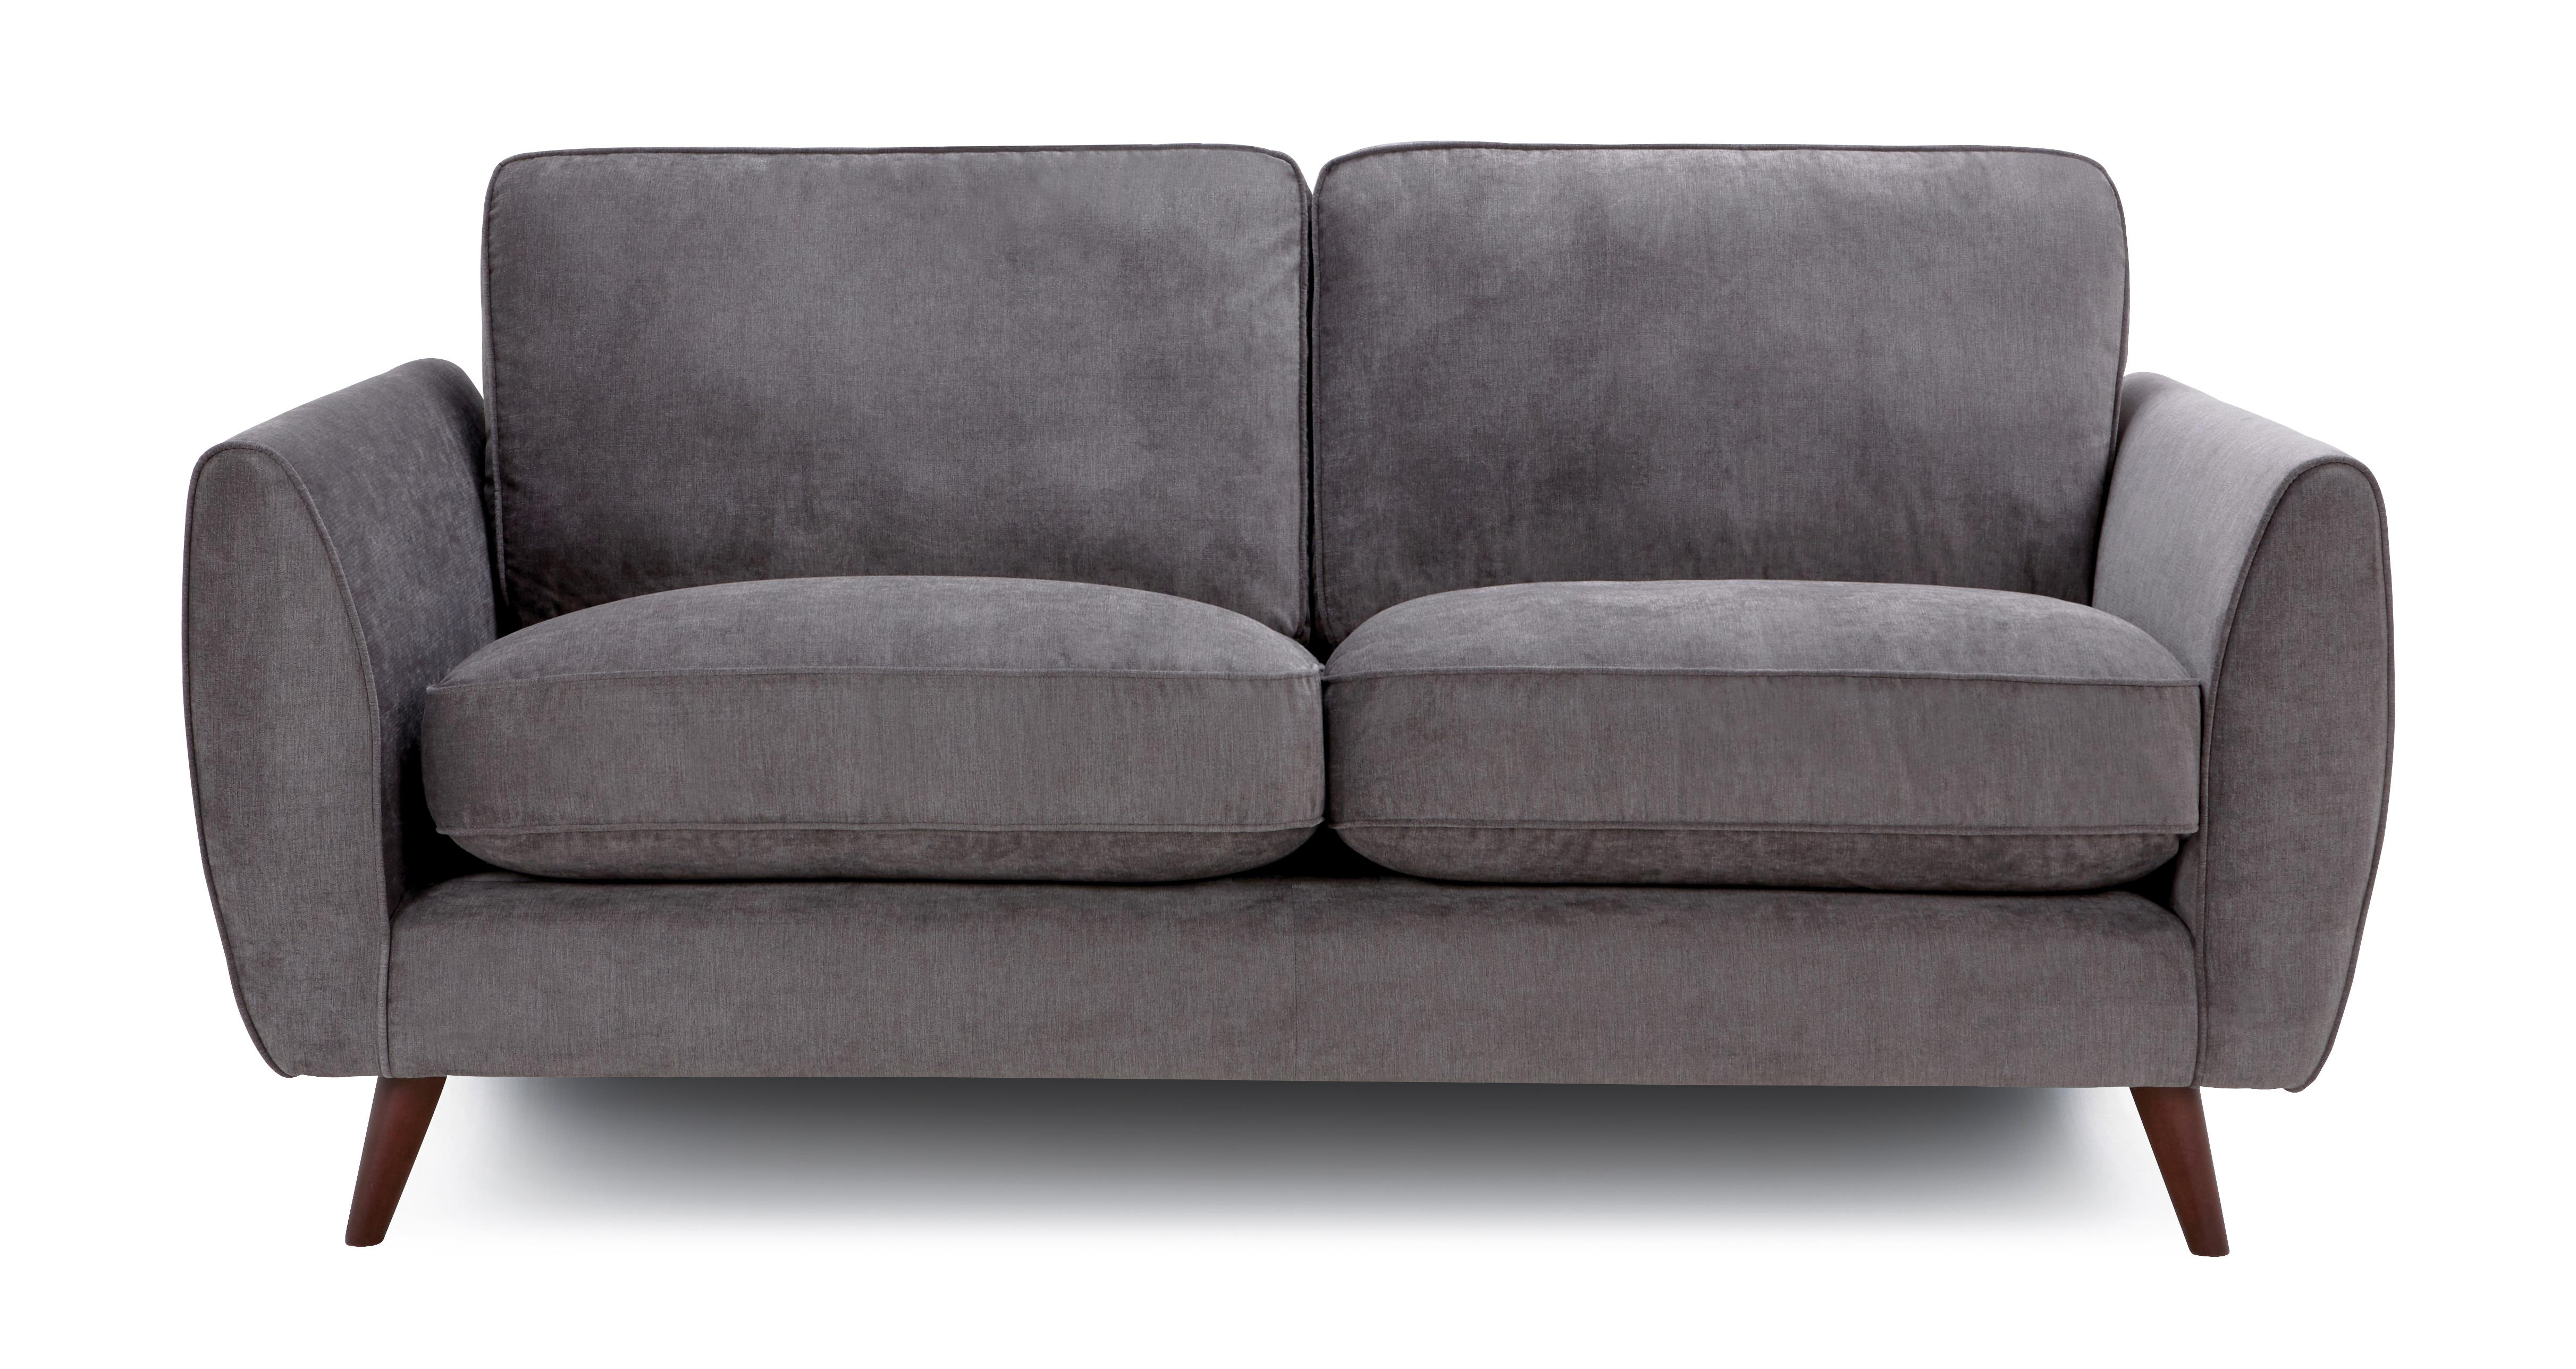 Aurora 3 seater sofa plaza dfs Uk home furniture market